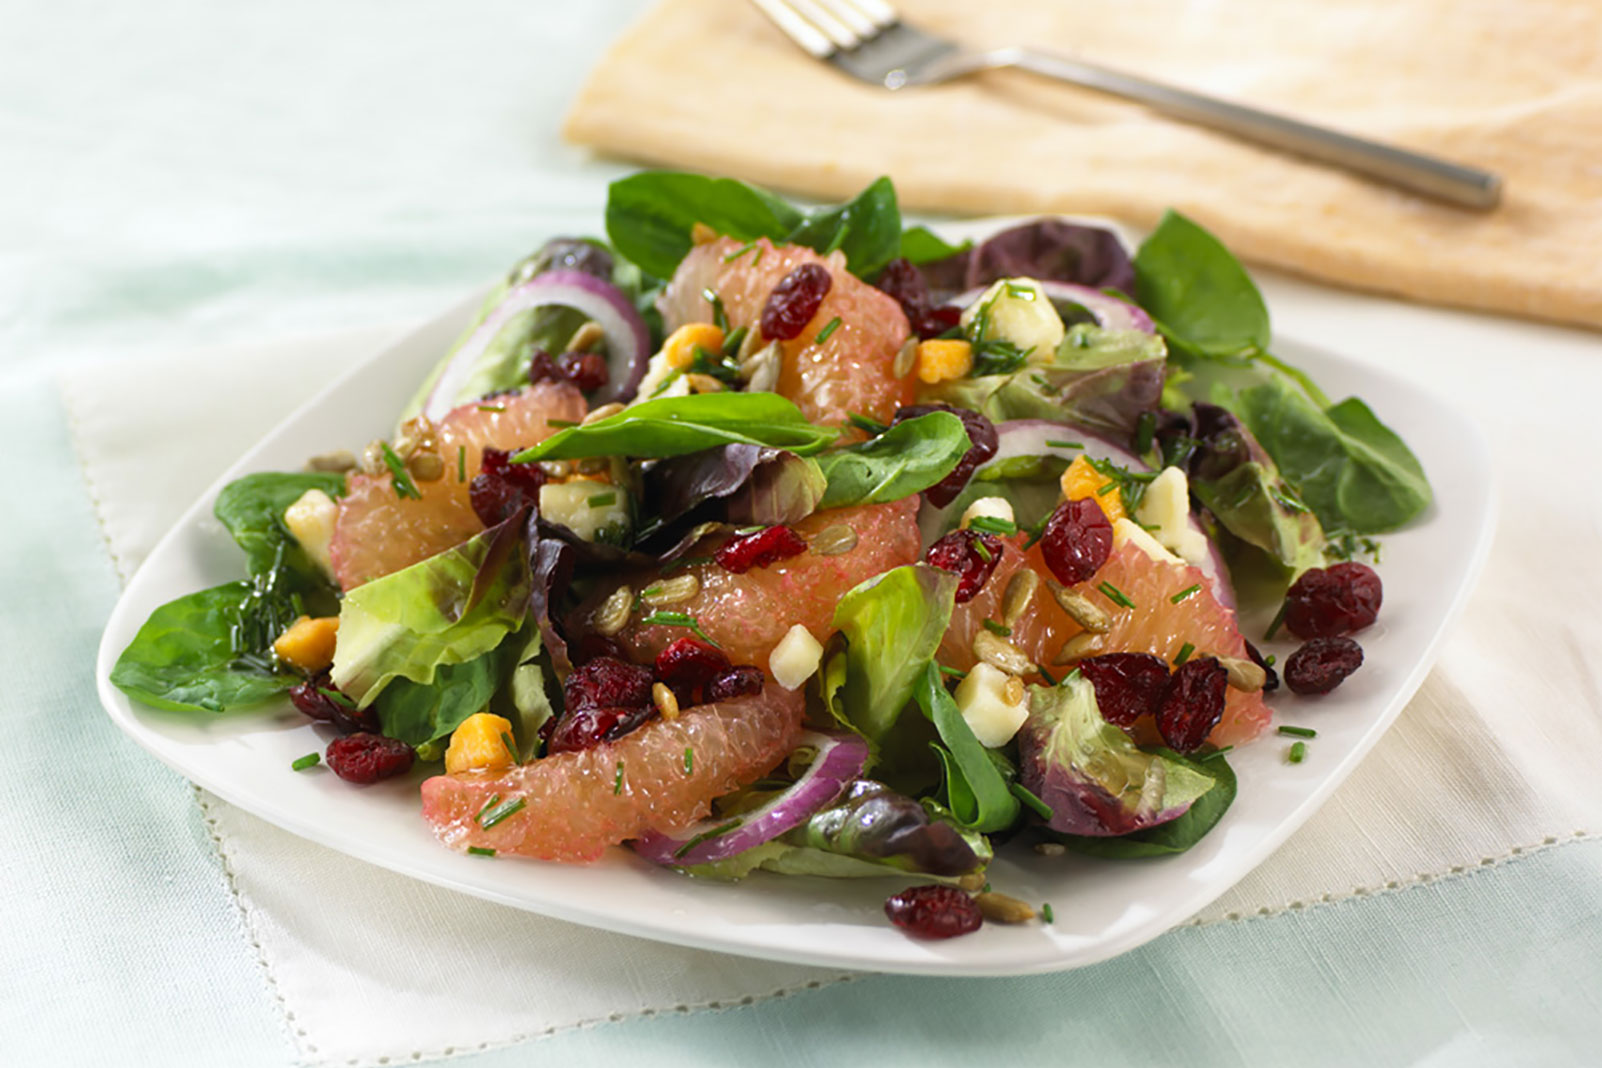 Cranberry Citrus Salad with Sunflower Seeds